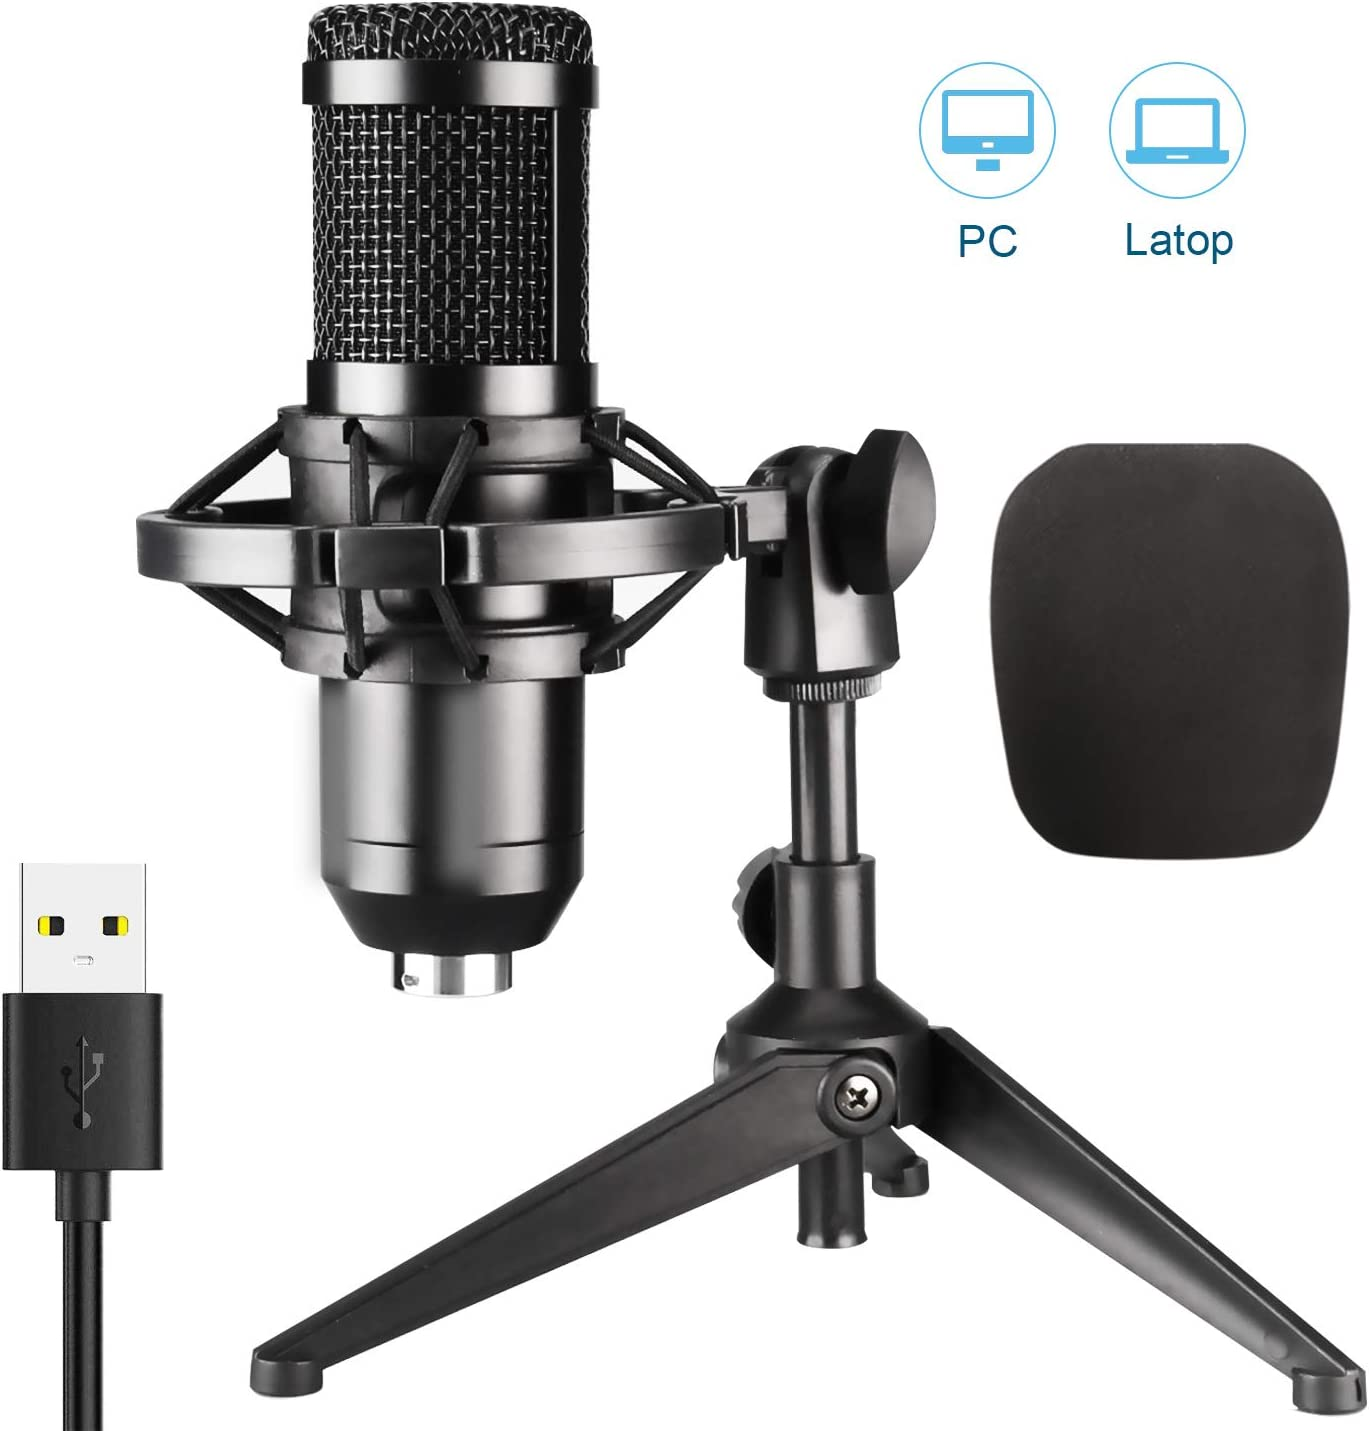 USB Microphone,Condenser Recording Microphone for PC Computer Desktop Laptop MAC or Windows Recording, Voice Overs,Streaming Broadcast,YouTube Game (01)